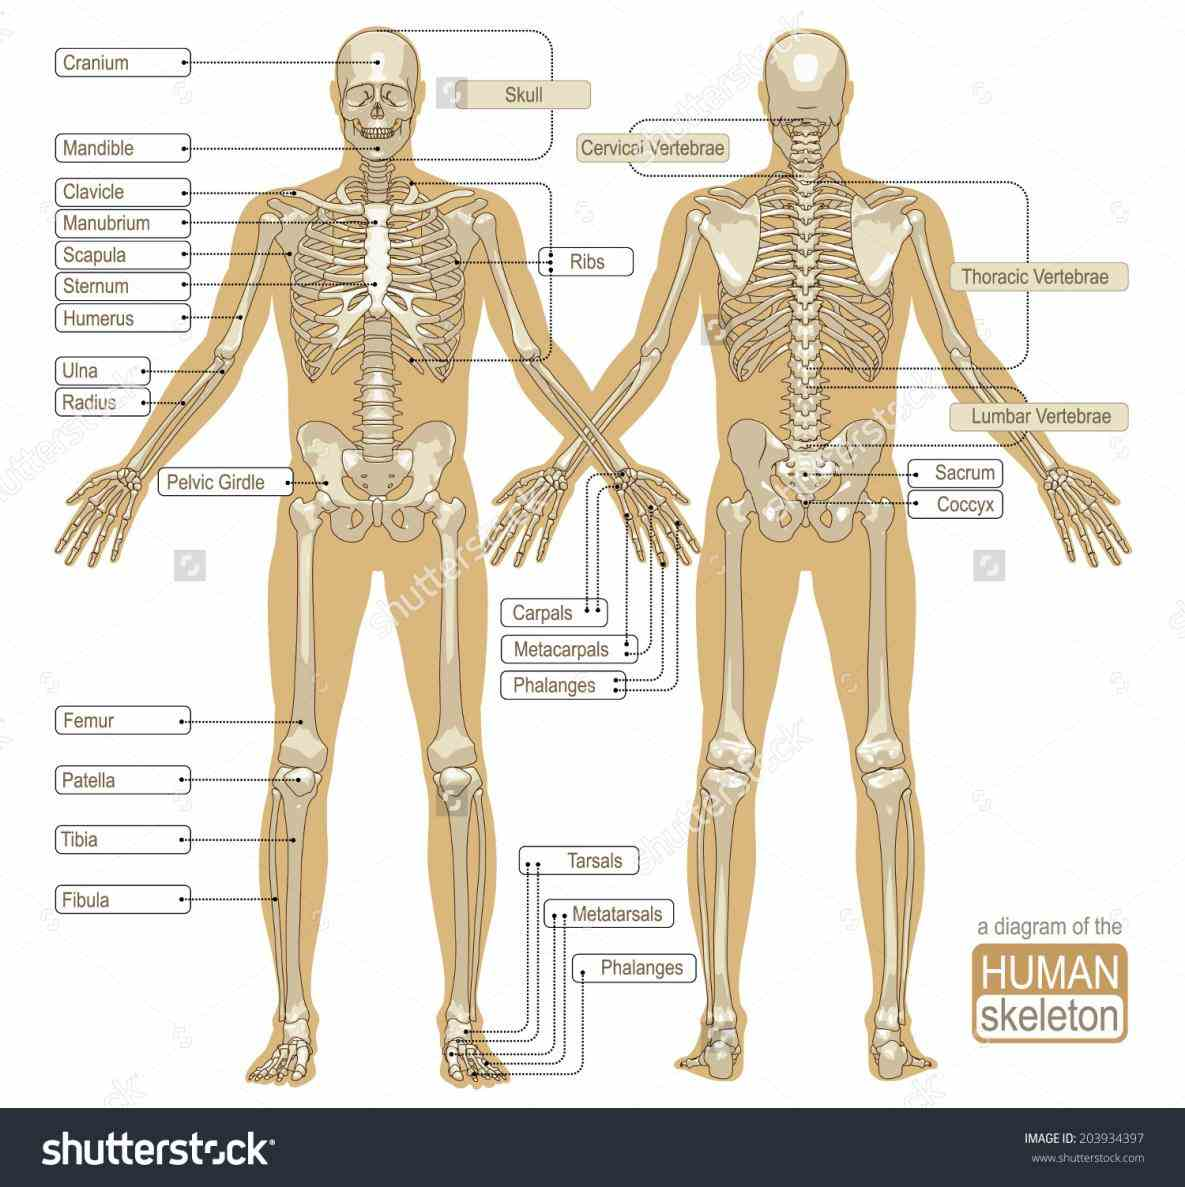 Parts Of The Human Skeletal System